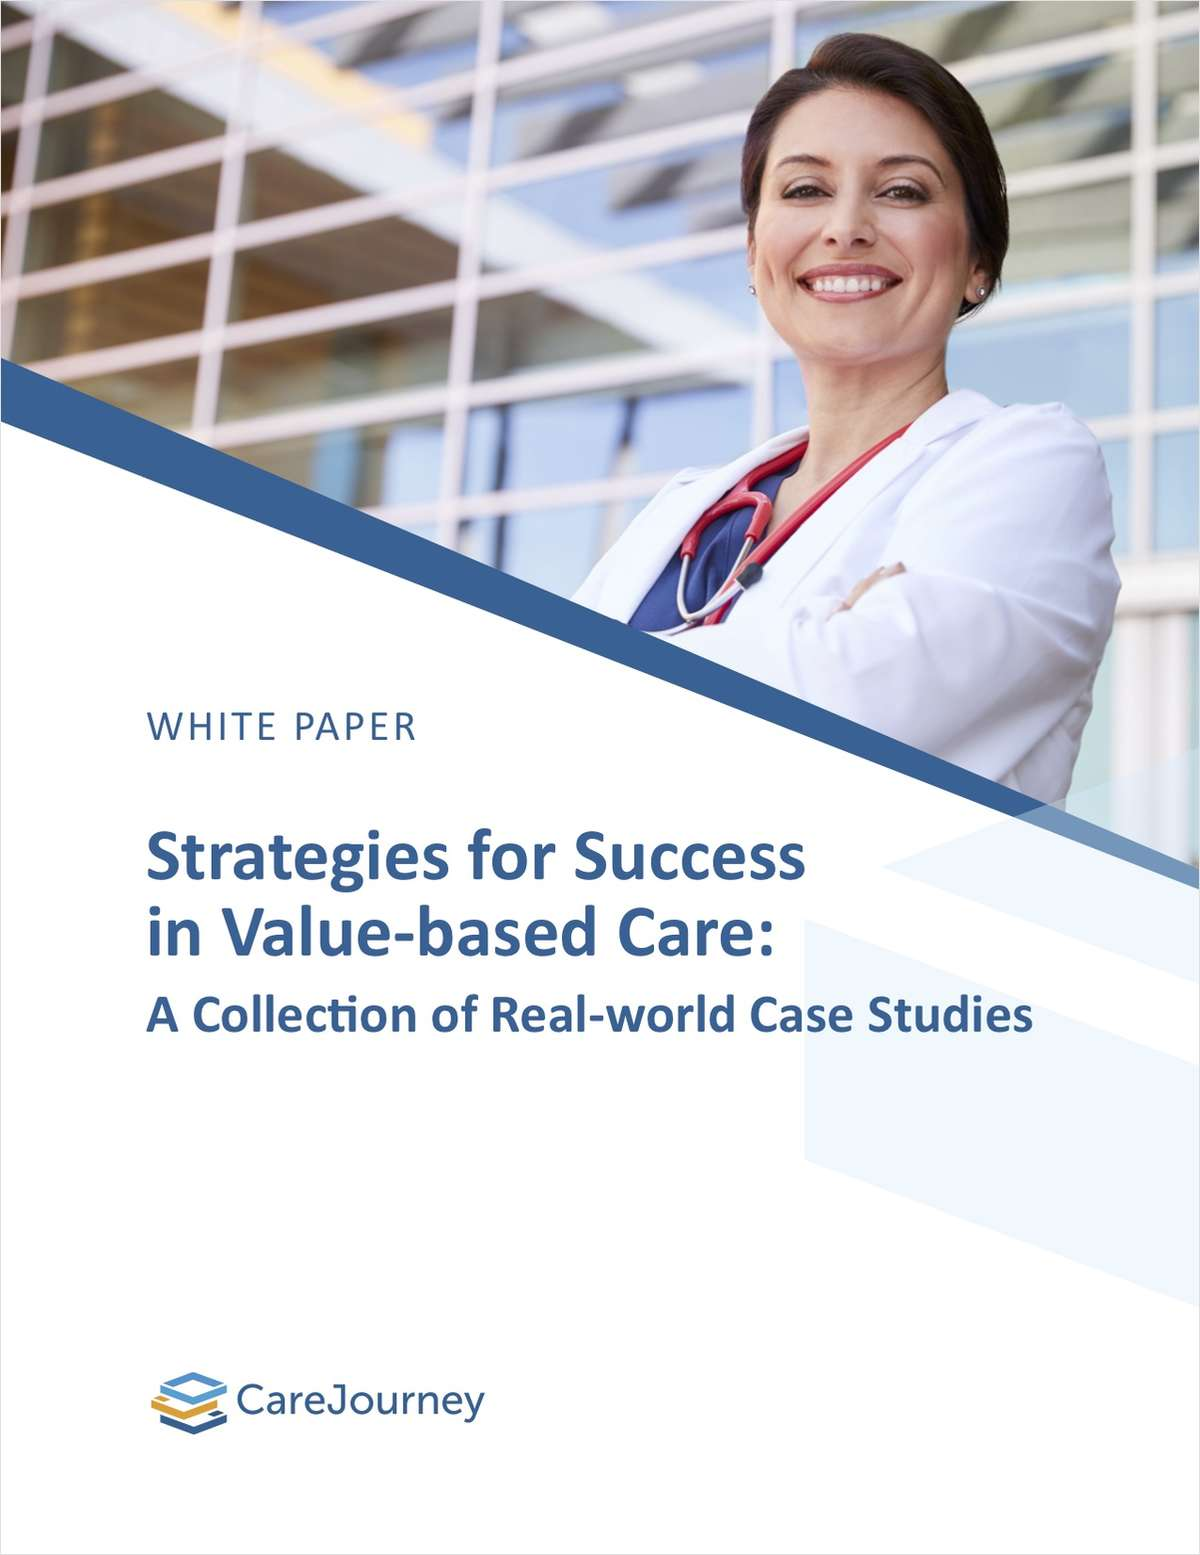 How eight value-based care organizations use data and analysis to drive decisions, improve care, and grow networks profitably.